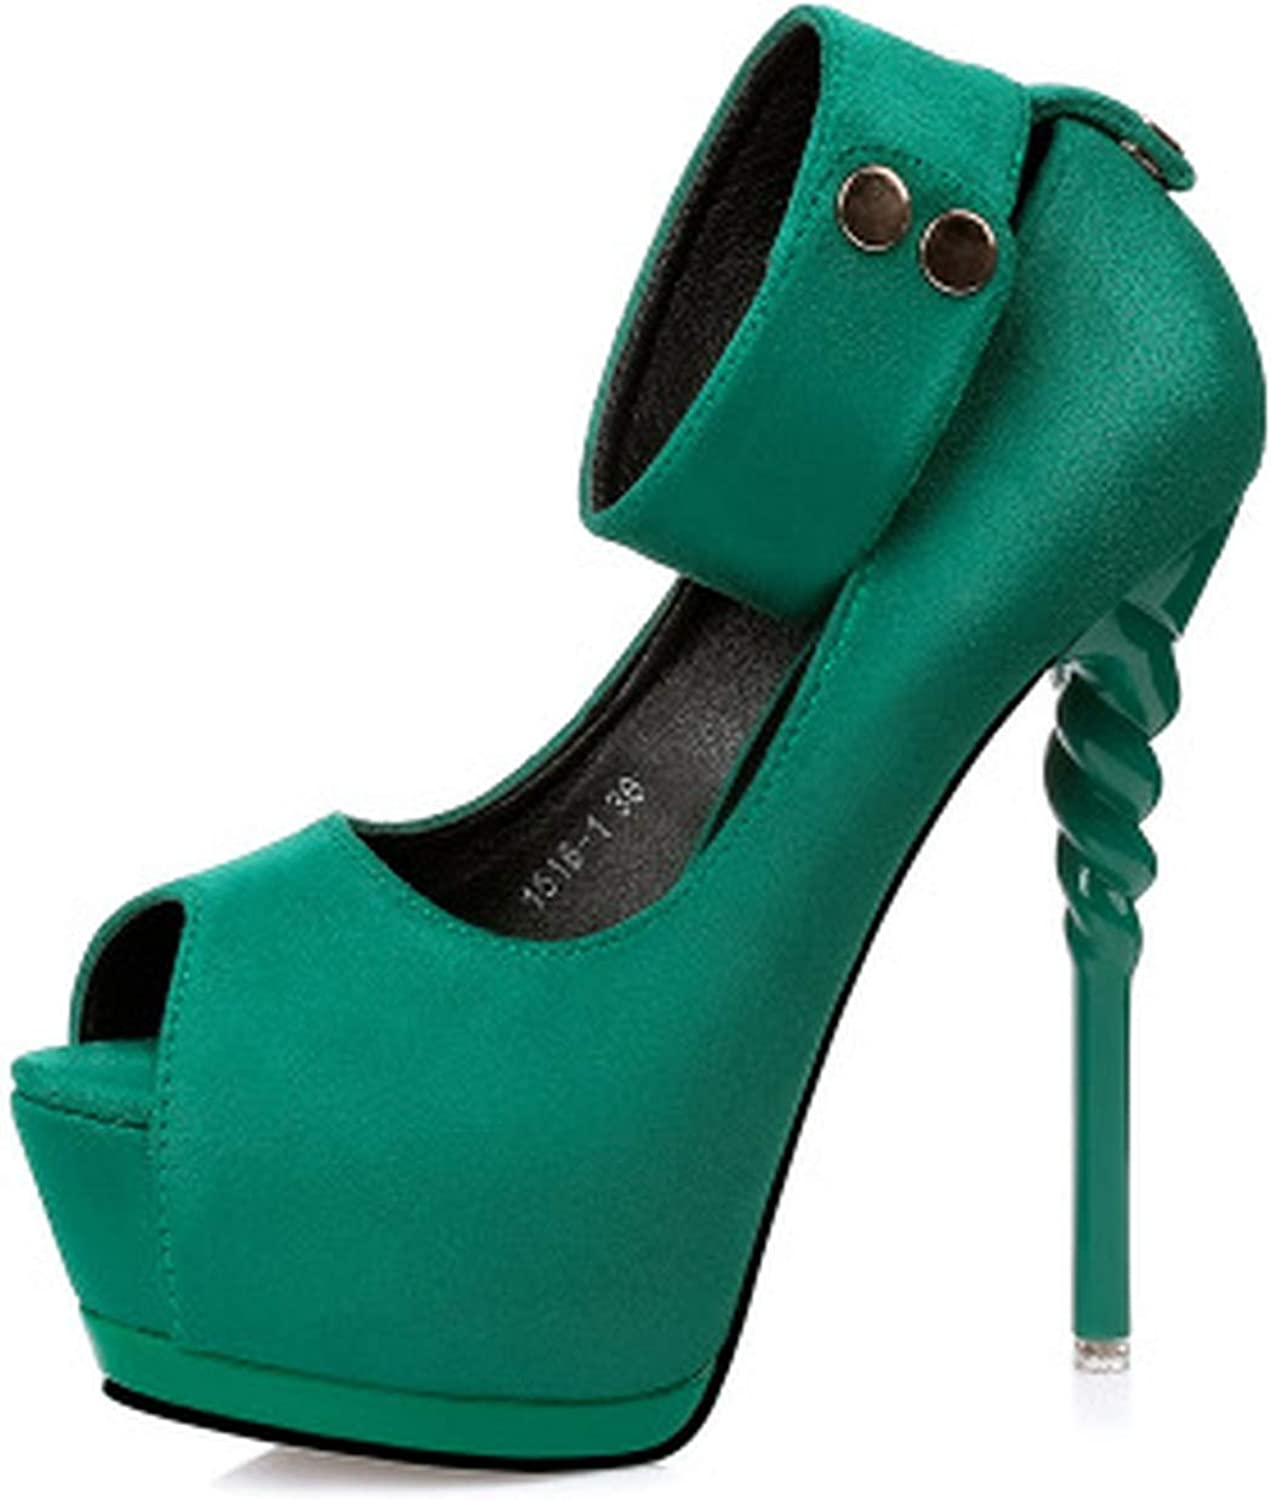 Women's shoes High Heels with Platform Sexy shoes Flock Pumps Anklets Spike Heels 5 colors